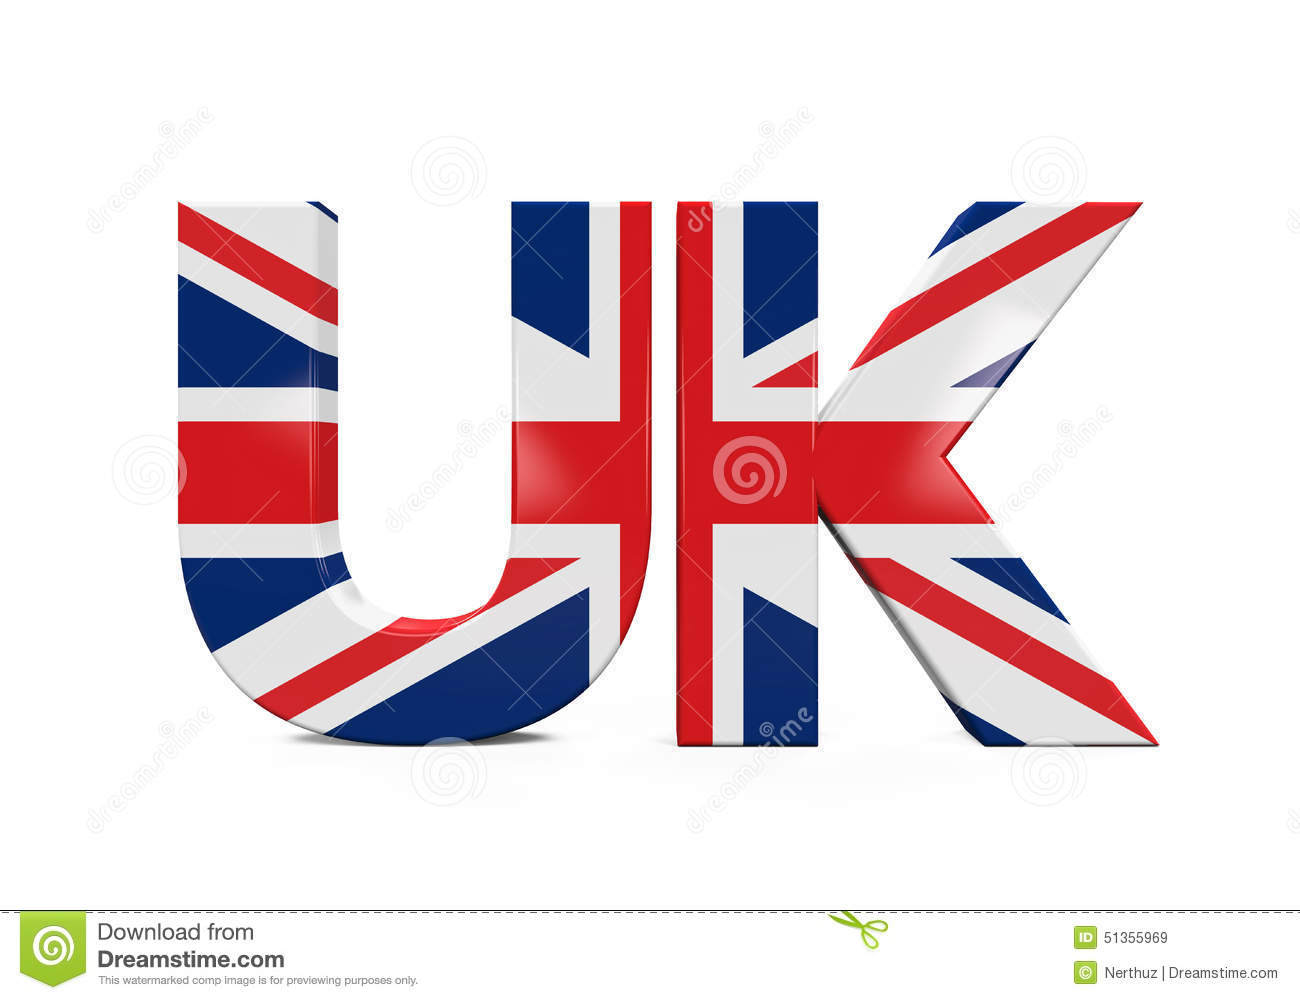 Image result for UK name